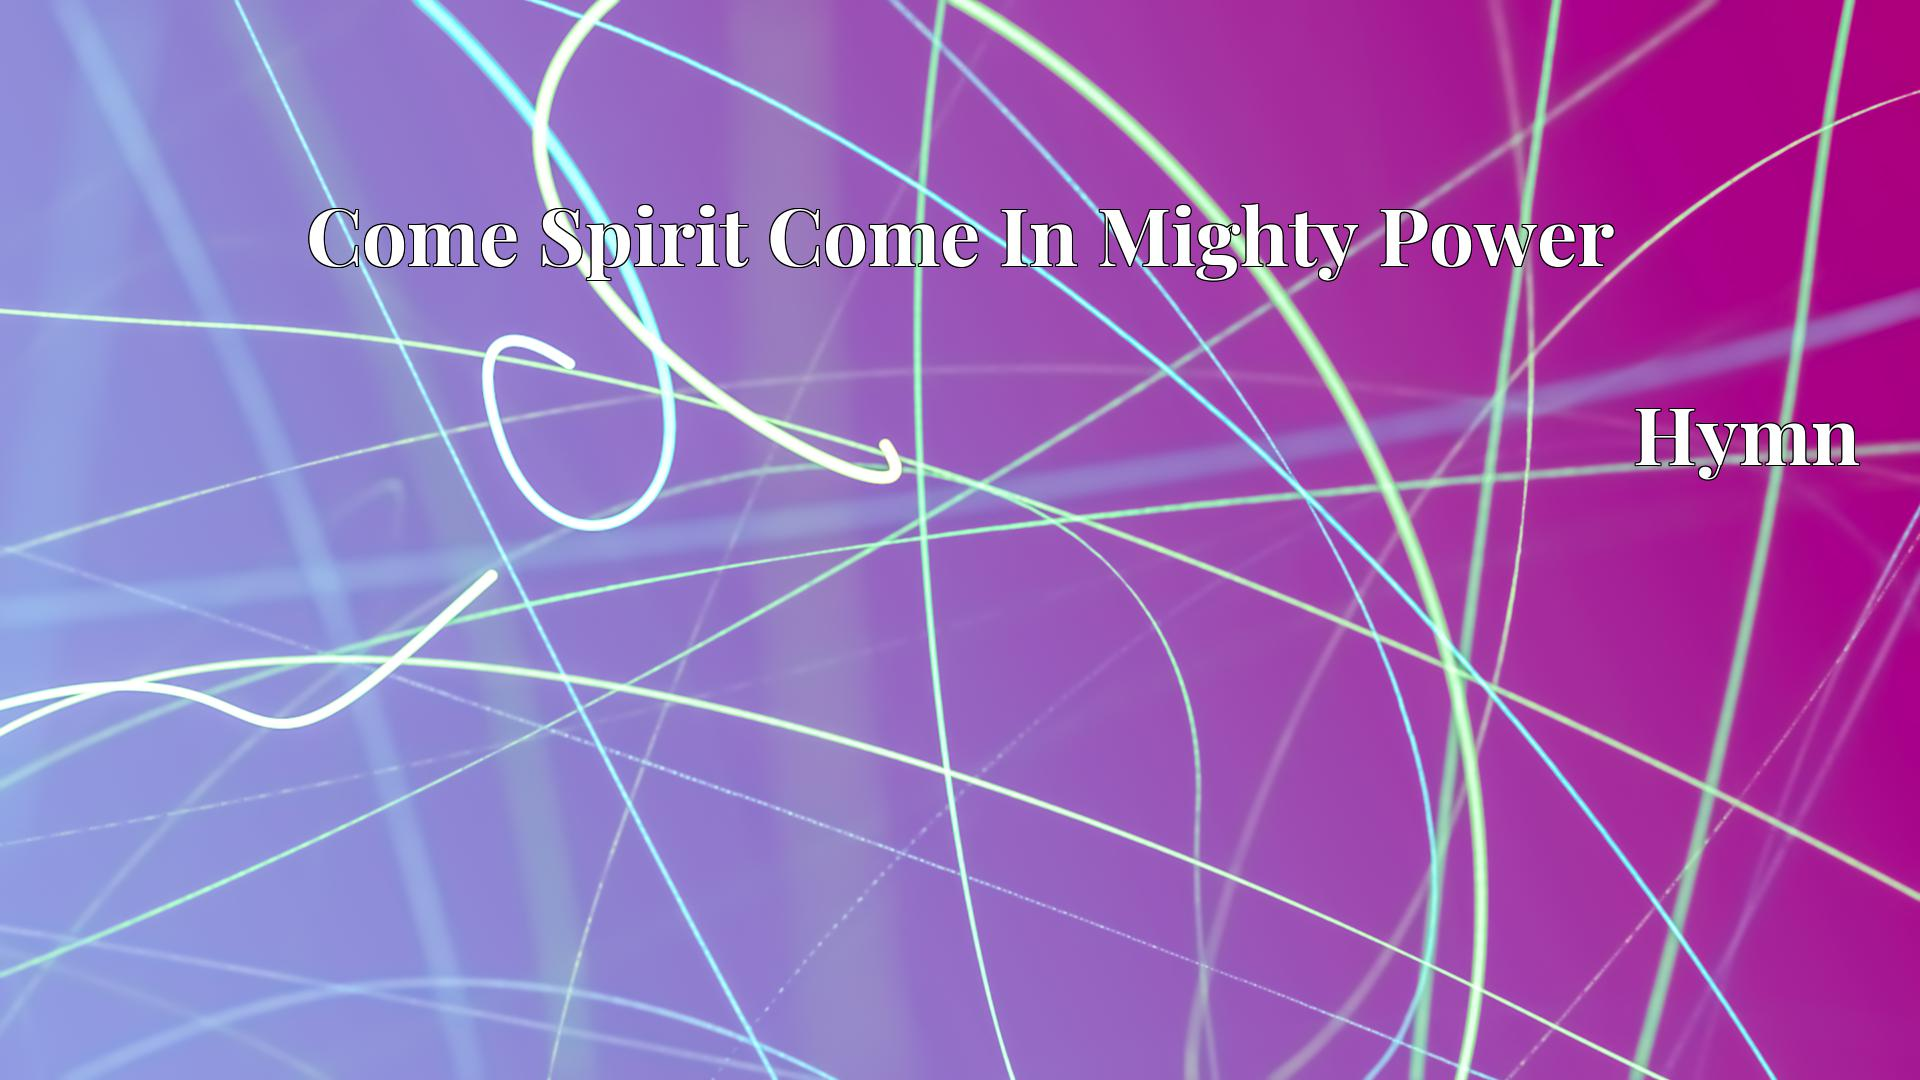 Come Spirit Come In Mighty Power - Hymn